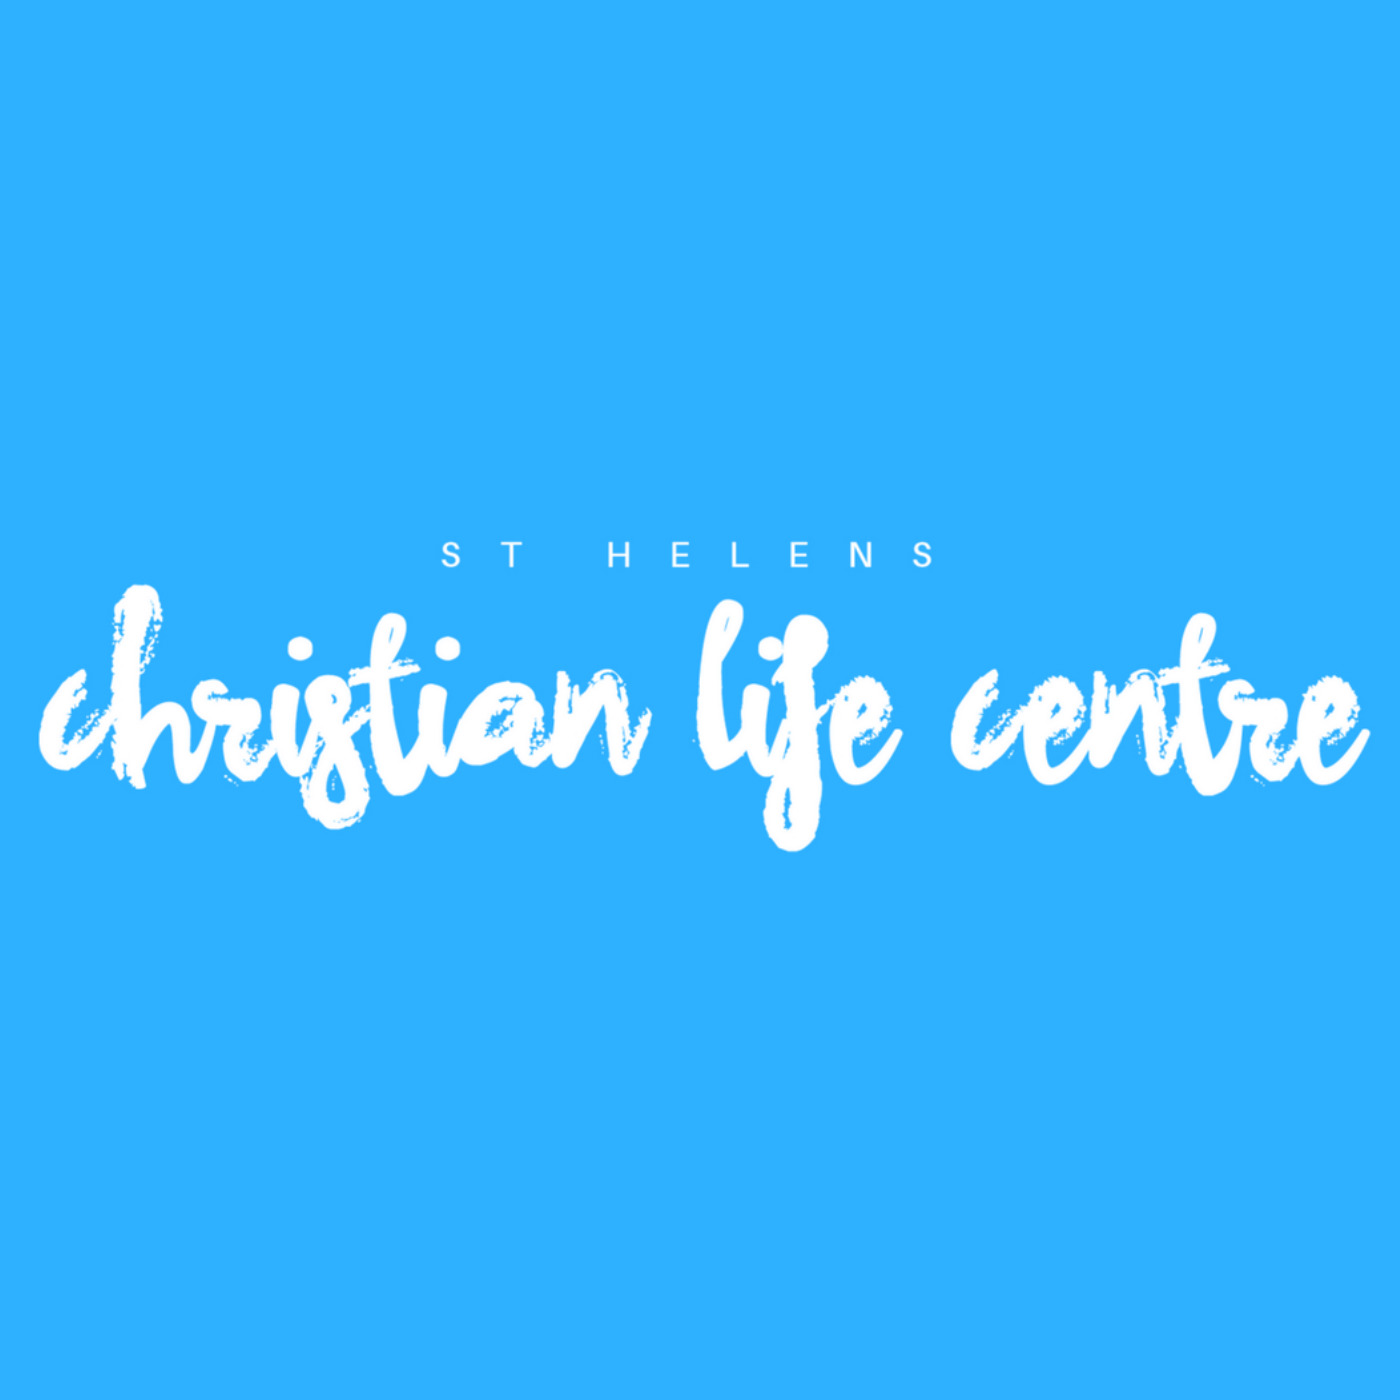 st helens christian dating site St helens dating site welcome to isle of wight's online dating site for singles in st helens, we're here to help you make new friends and start relationships with local people around st helens, isle of wight.